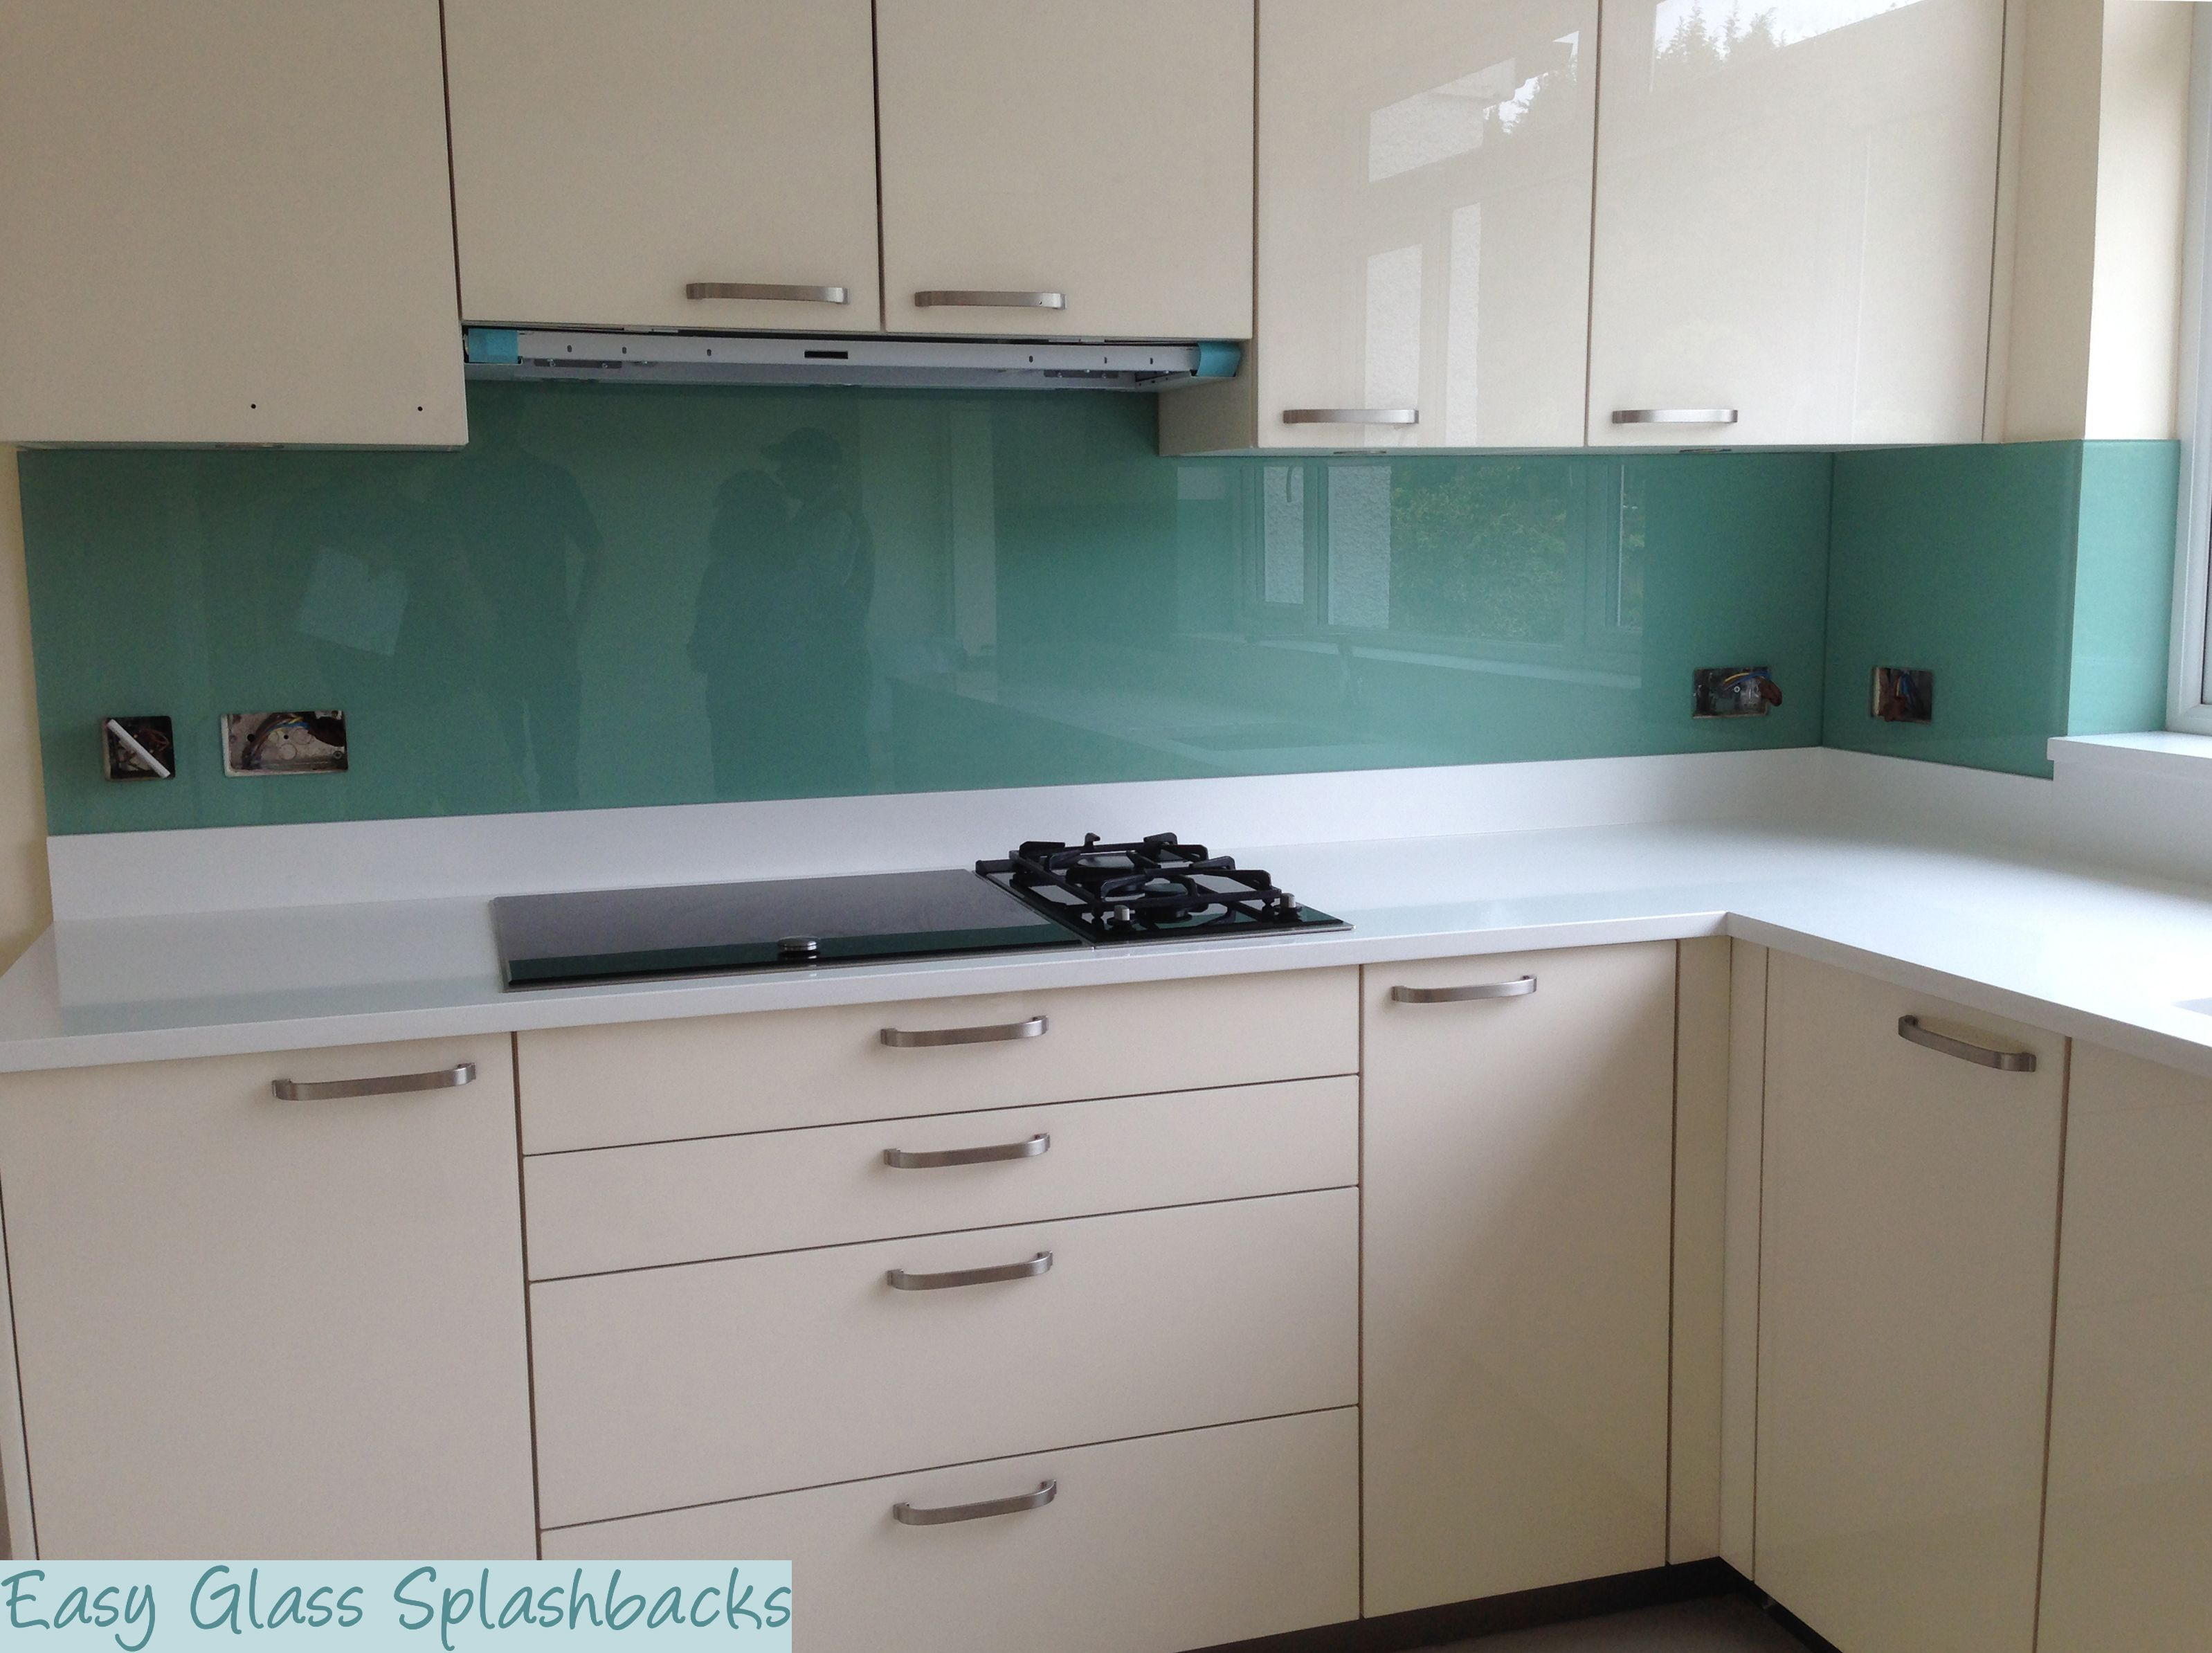 22 best Green Glass Splashbacks images on Pinterest | Colored glass ...